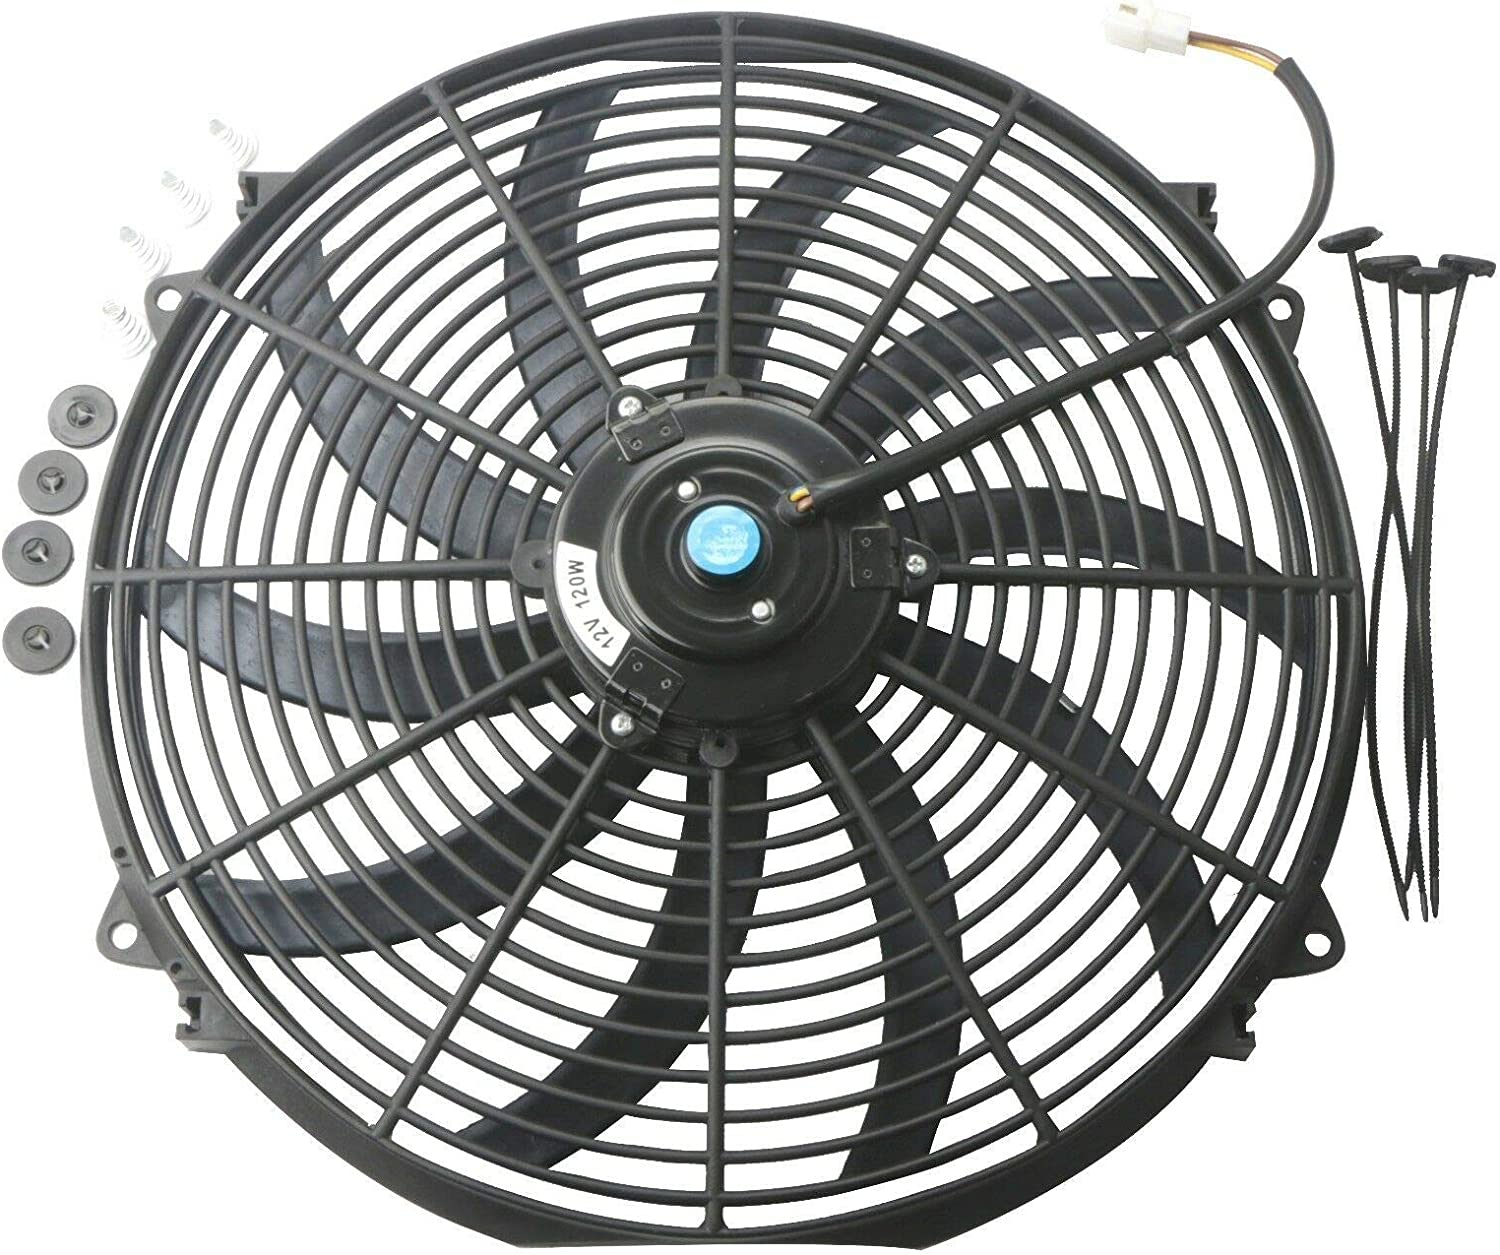 "LTI Universal High Performance S Blade Pull/Push 12V Slim Electric Cooling Radiator Fan + Fan Mounting Kit (16"", Black)"